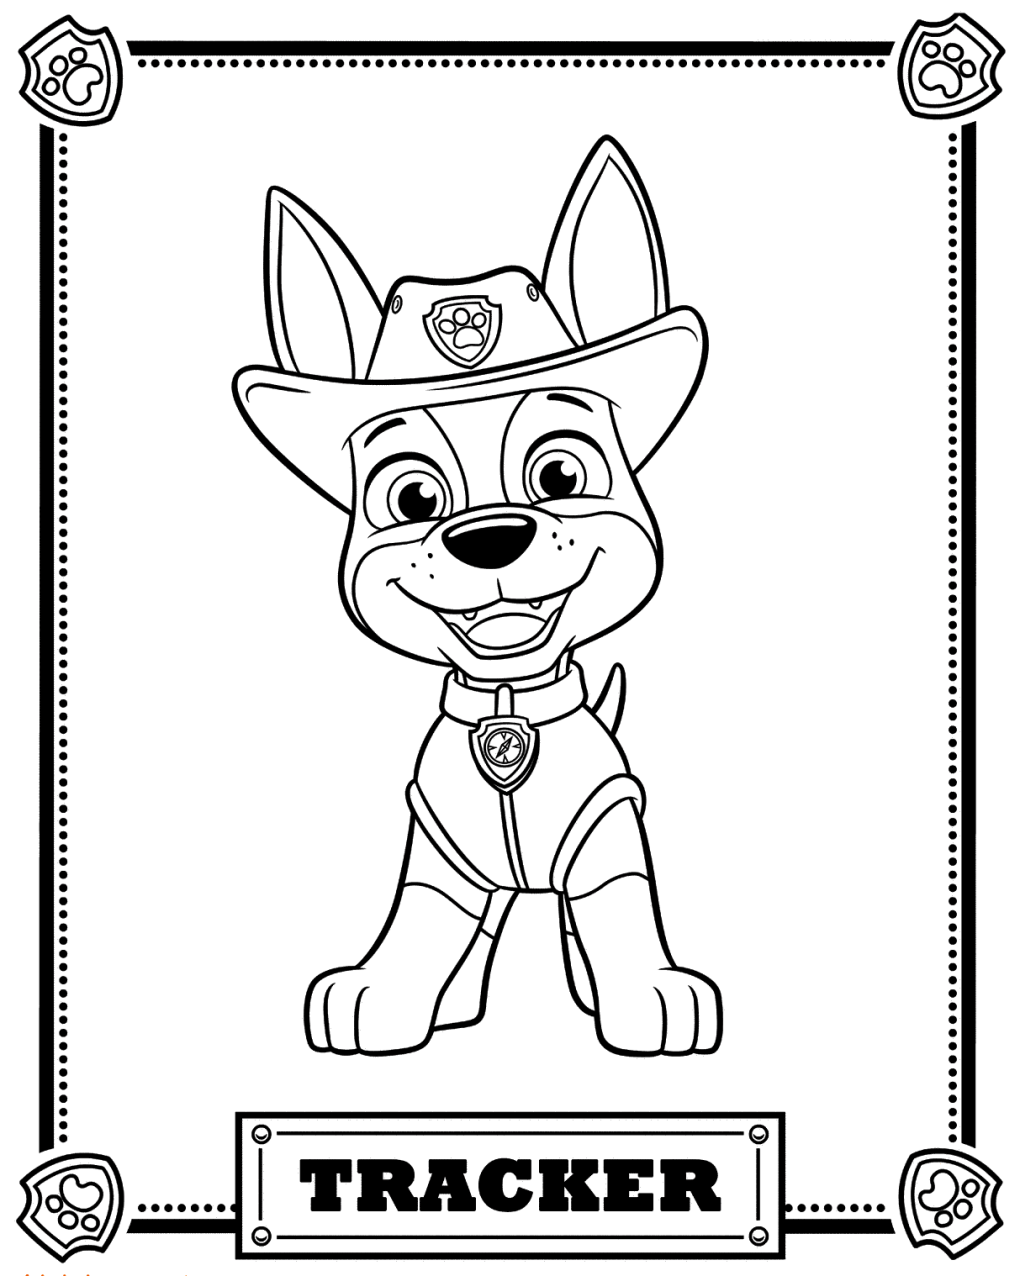 Top 10 Paw Patrol Coloring Pages In 2021 Paw Patrol Coloring Paw Patrol Coloring Pages Paw Patrol Printables